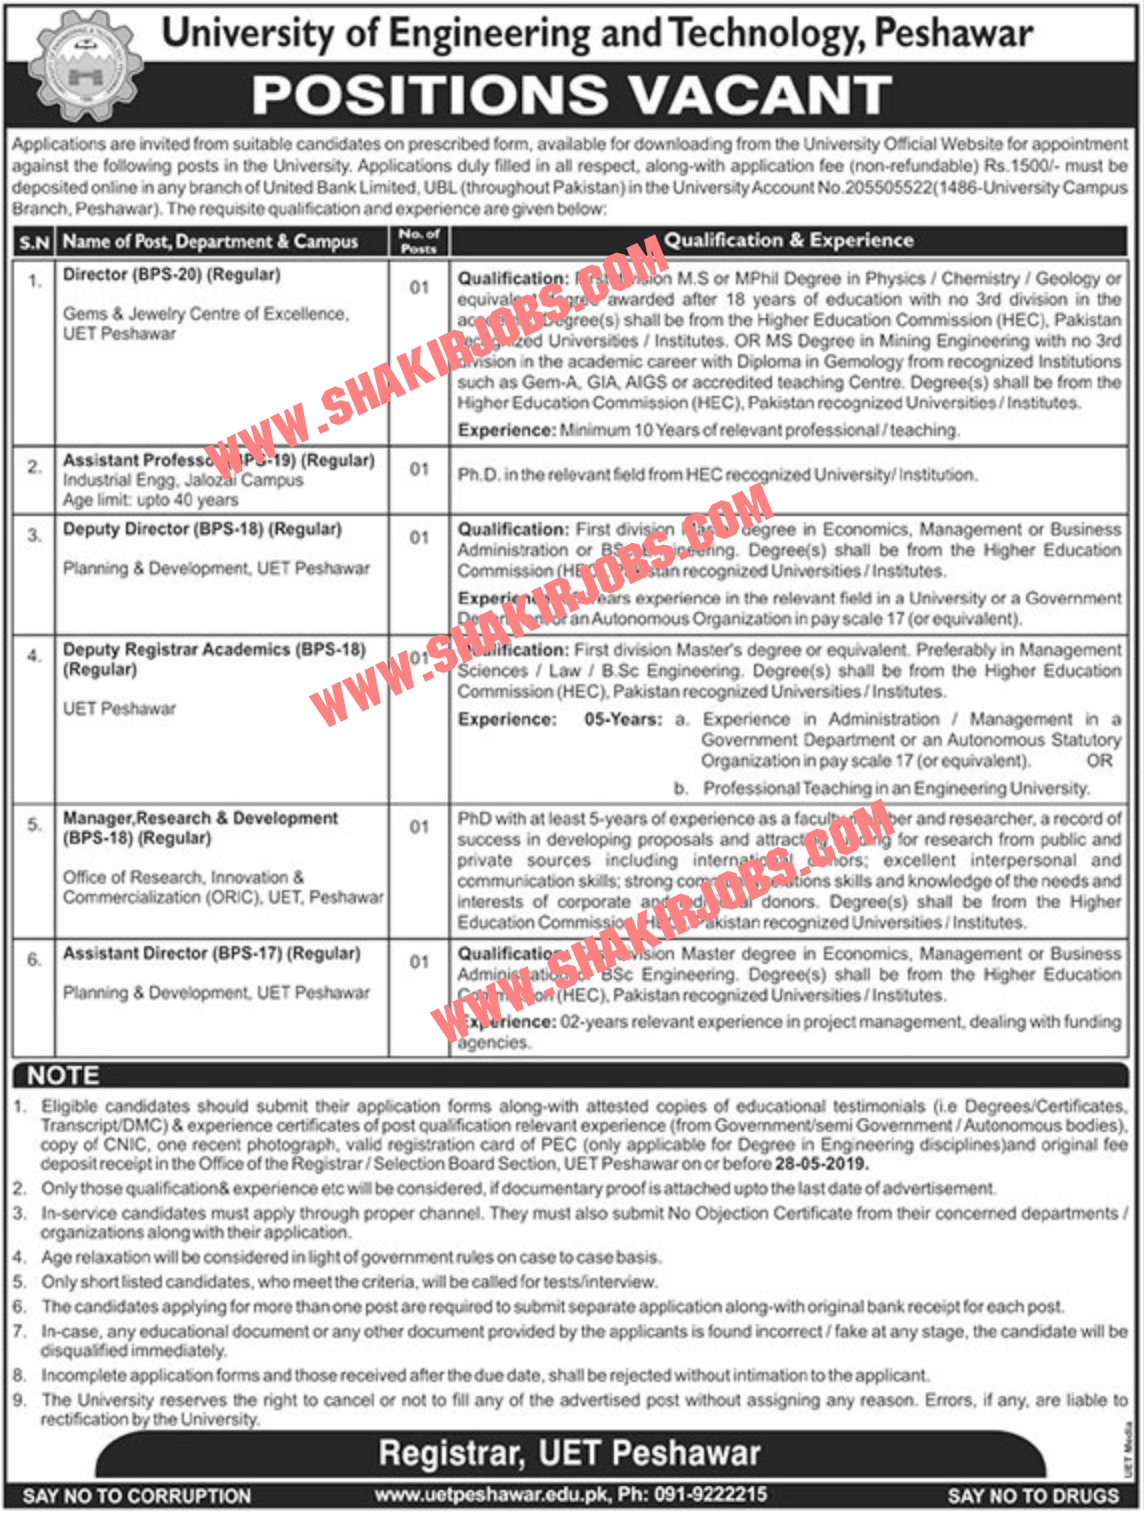 peshawar,uet peshawar,jobs,uet peshawar jobs 2019,latest jobs 2019,uet,uet jobs 2019,uet peshawar admission,uet mardan jobs,latest jobs,uet lahore,university jobs,government jobs,uet peshawar jobs,jobs in pakistan,uet peshawer jobs,government jobs finder,latest jobs in pakistan,lahore,hazara jobs,uet peshawar latest jobs,kpk jobs,jobs in pakistan 2019,peshawar university jobs,peshawar uet,peshawar uni,pakistan